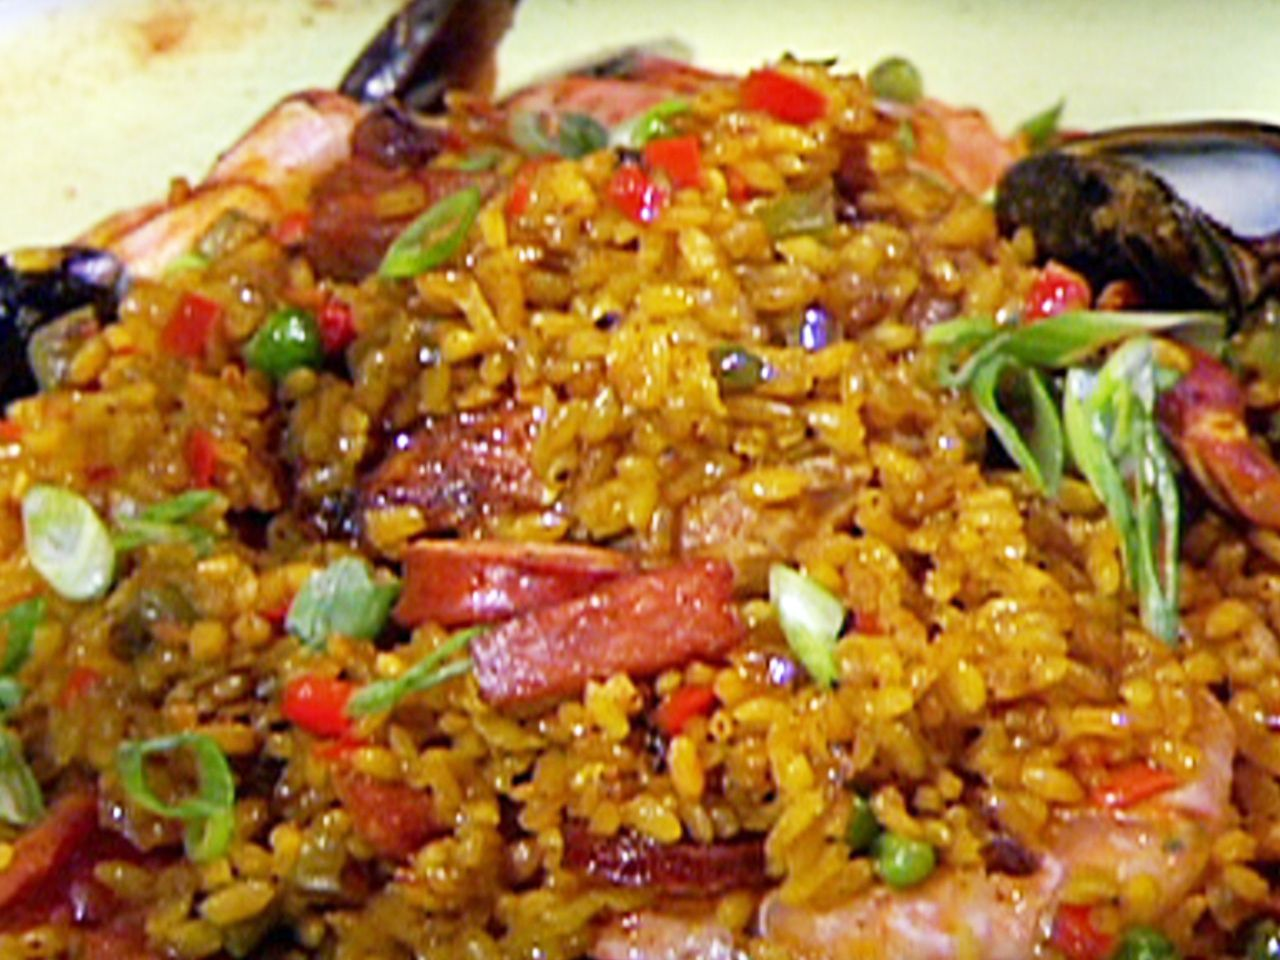 Grilled paella mixta recipe paella grilling and recipes forumfinder Choice Image